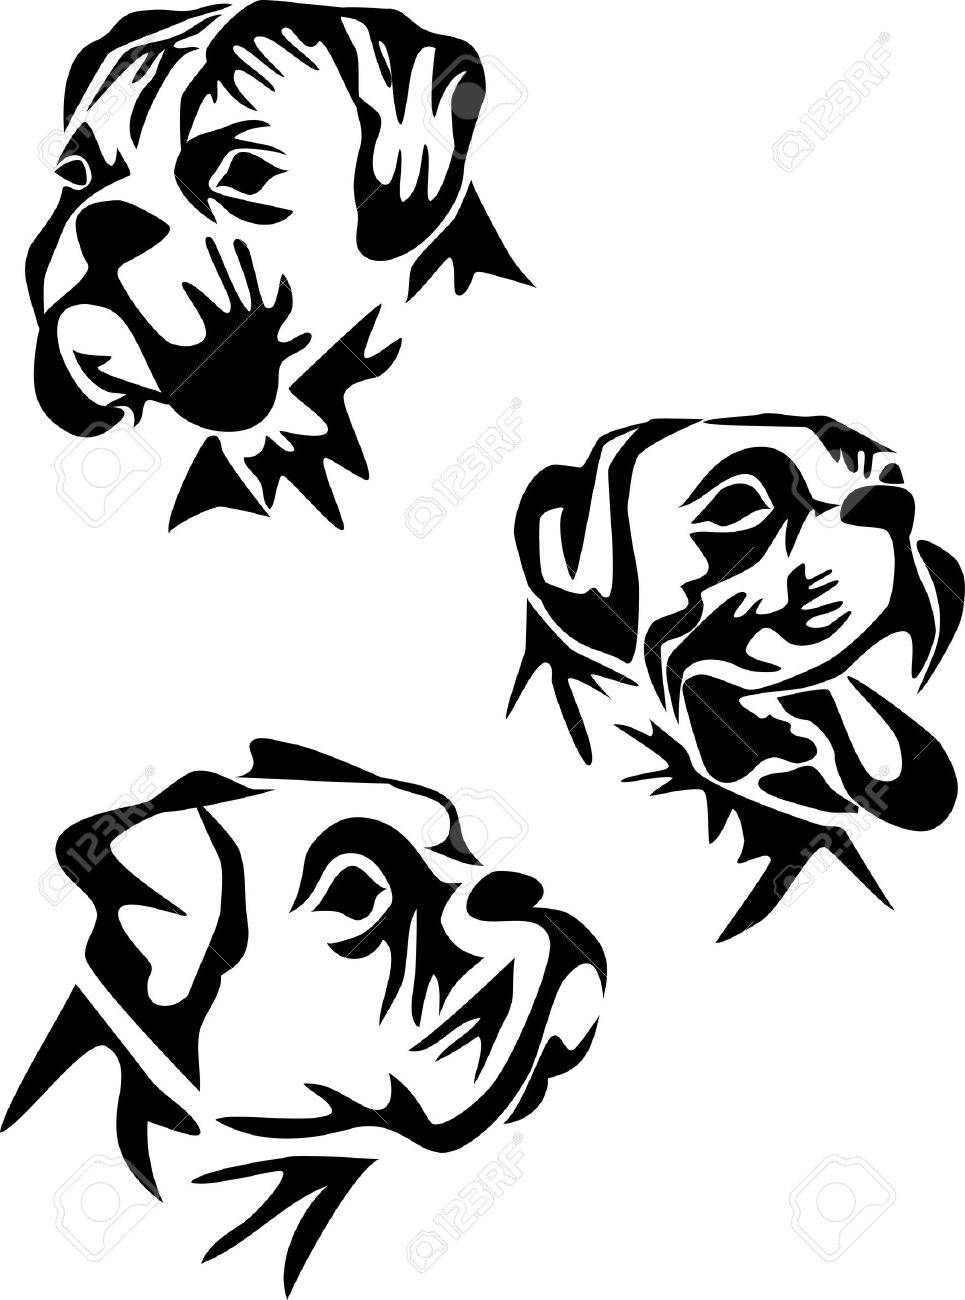 Boxer dog clipart black and white 8 » Clipart Station.